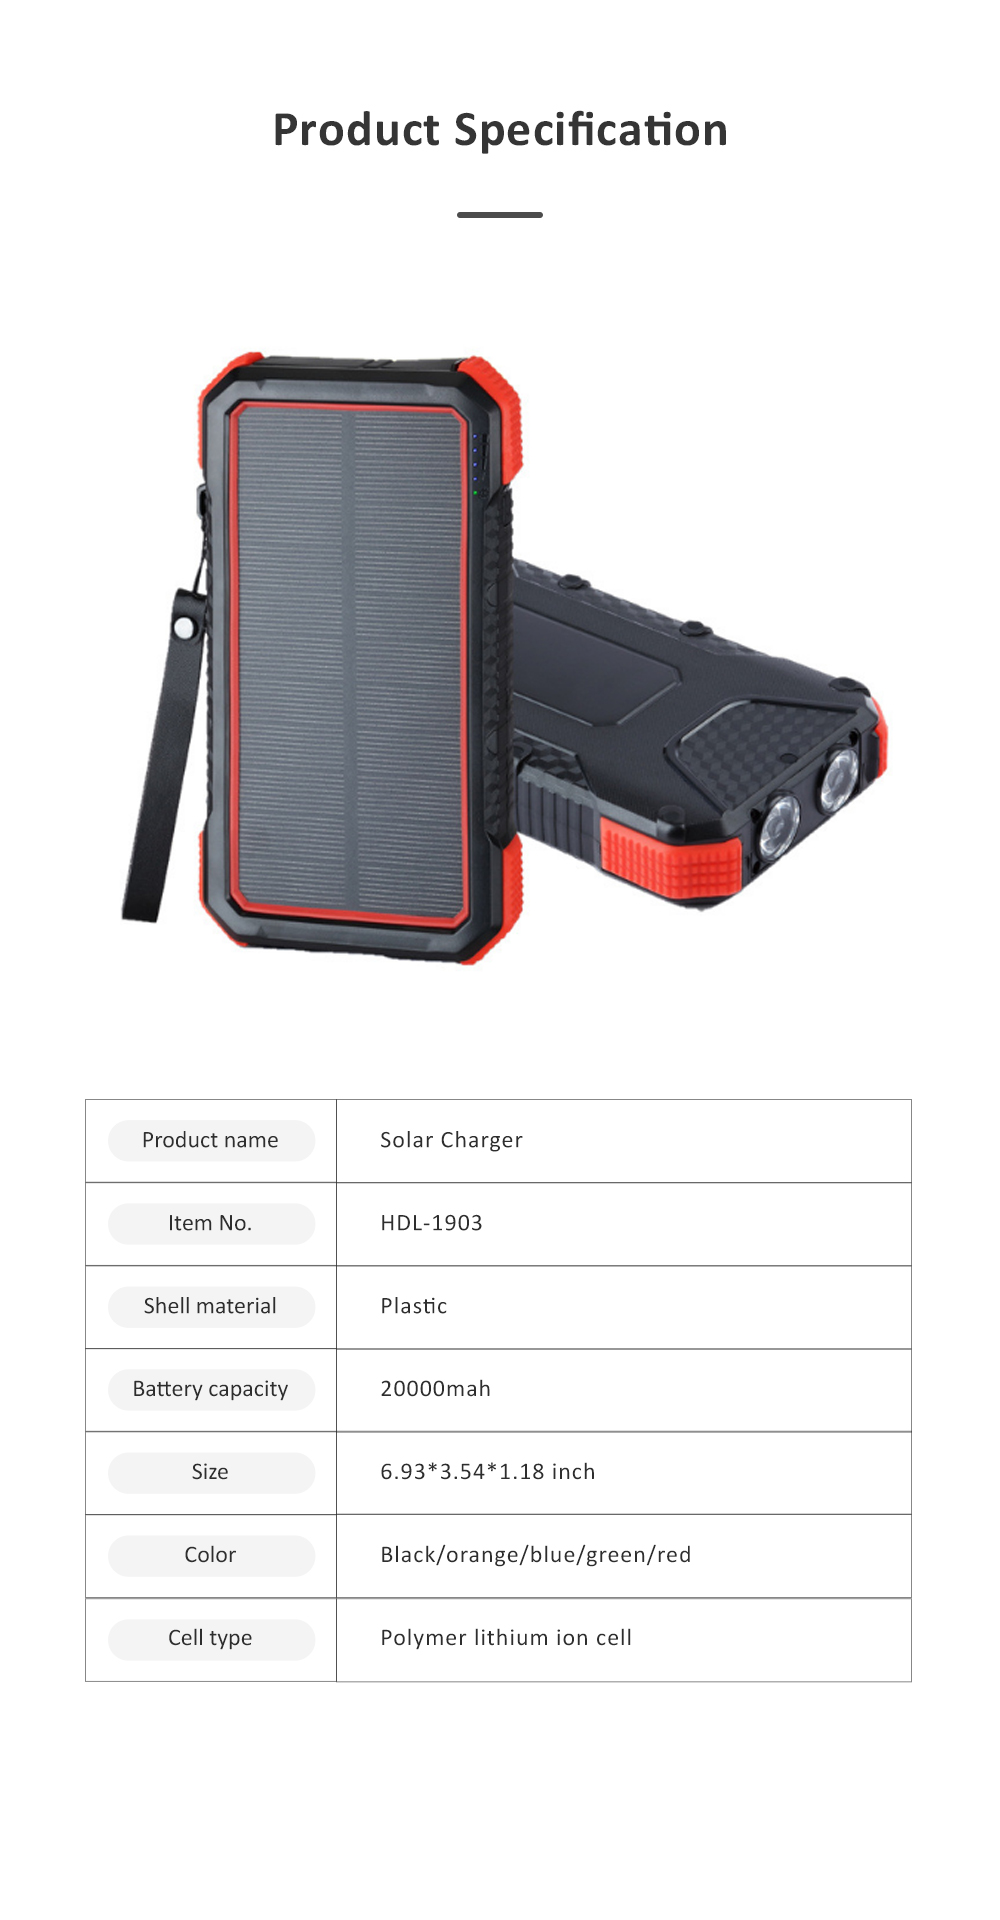 Solar Power Bank Chargers 20000mAh Portable Solar Power Bank Phone Charger with Two Type-C Port and Handle String 6